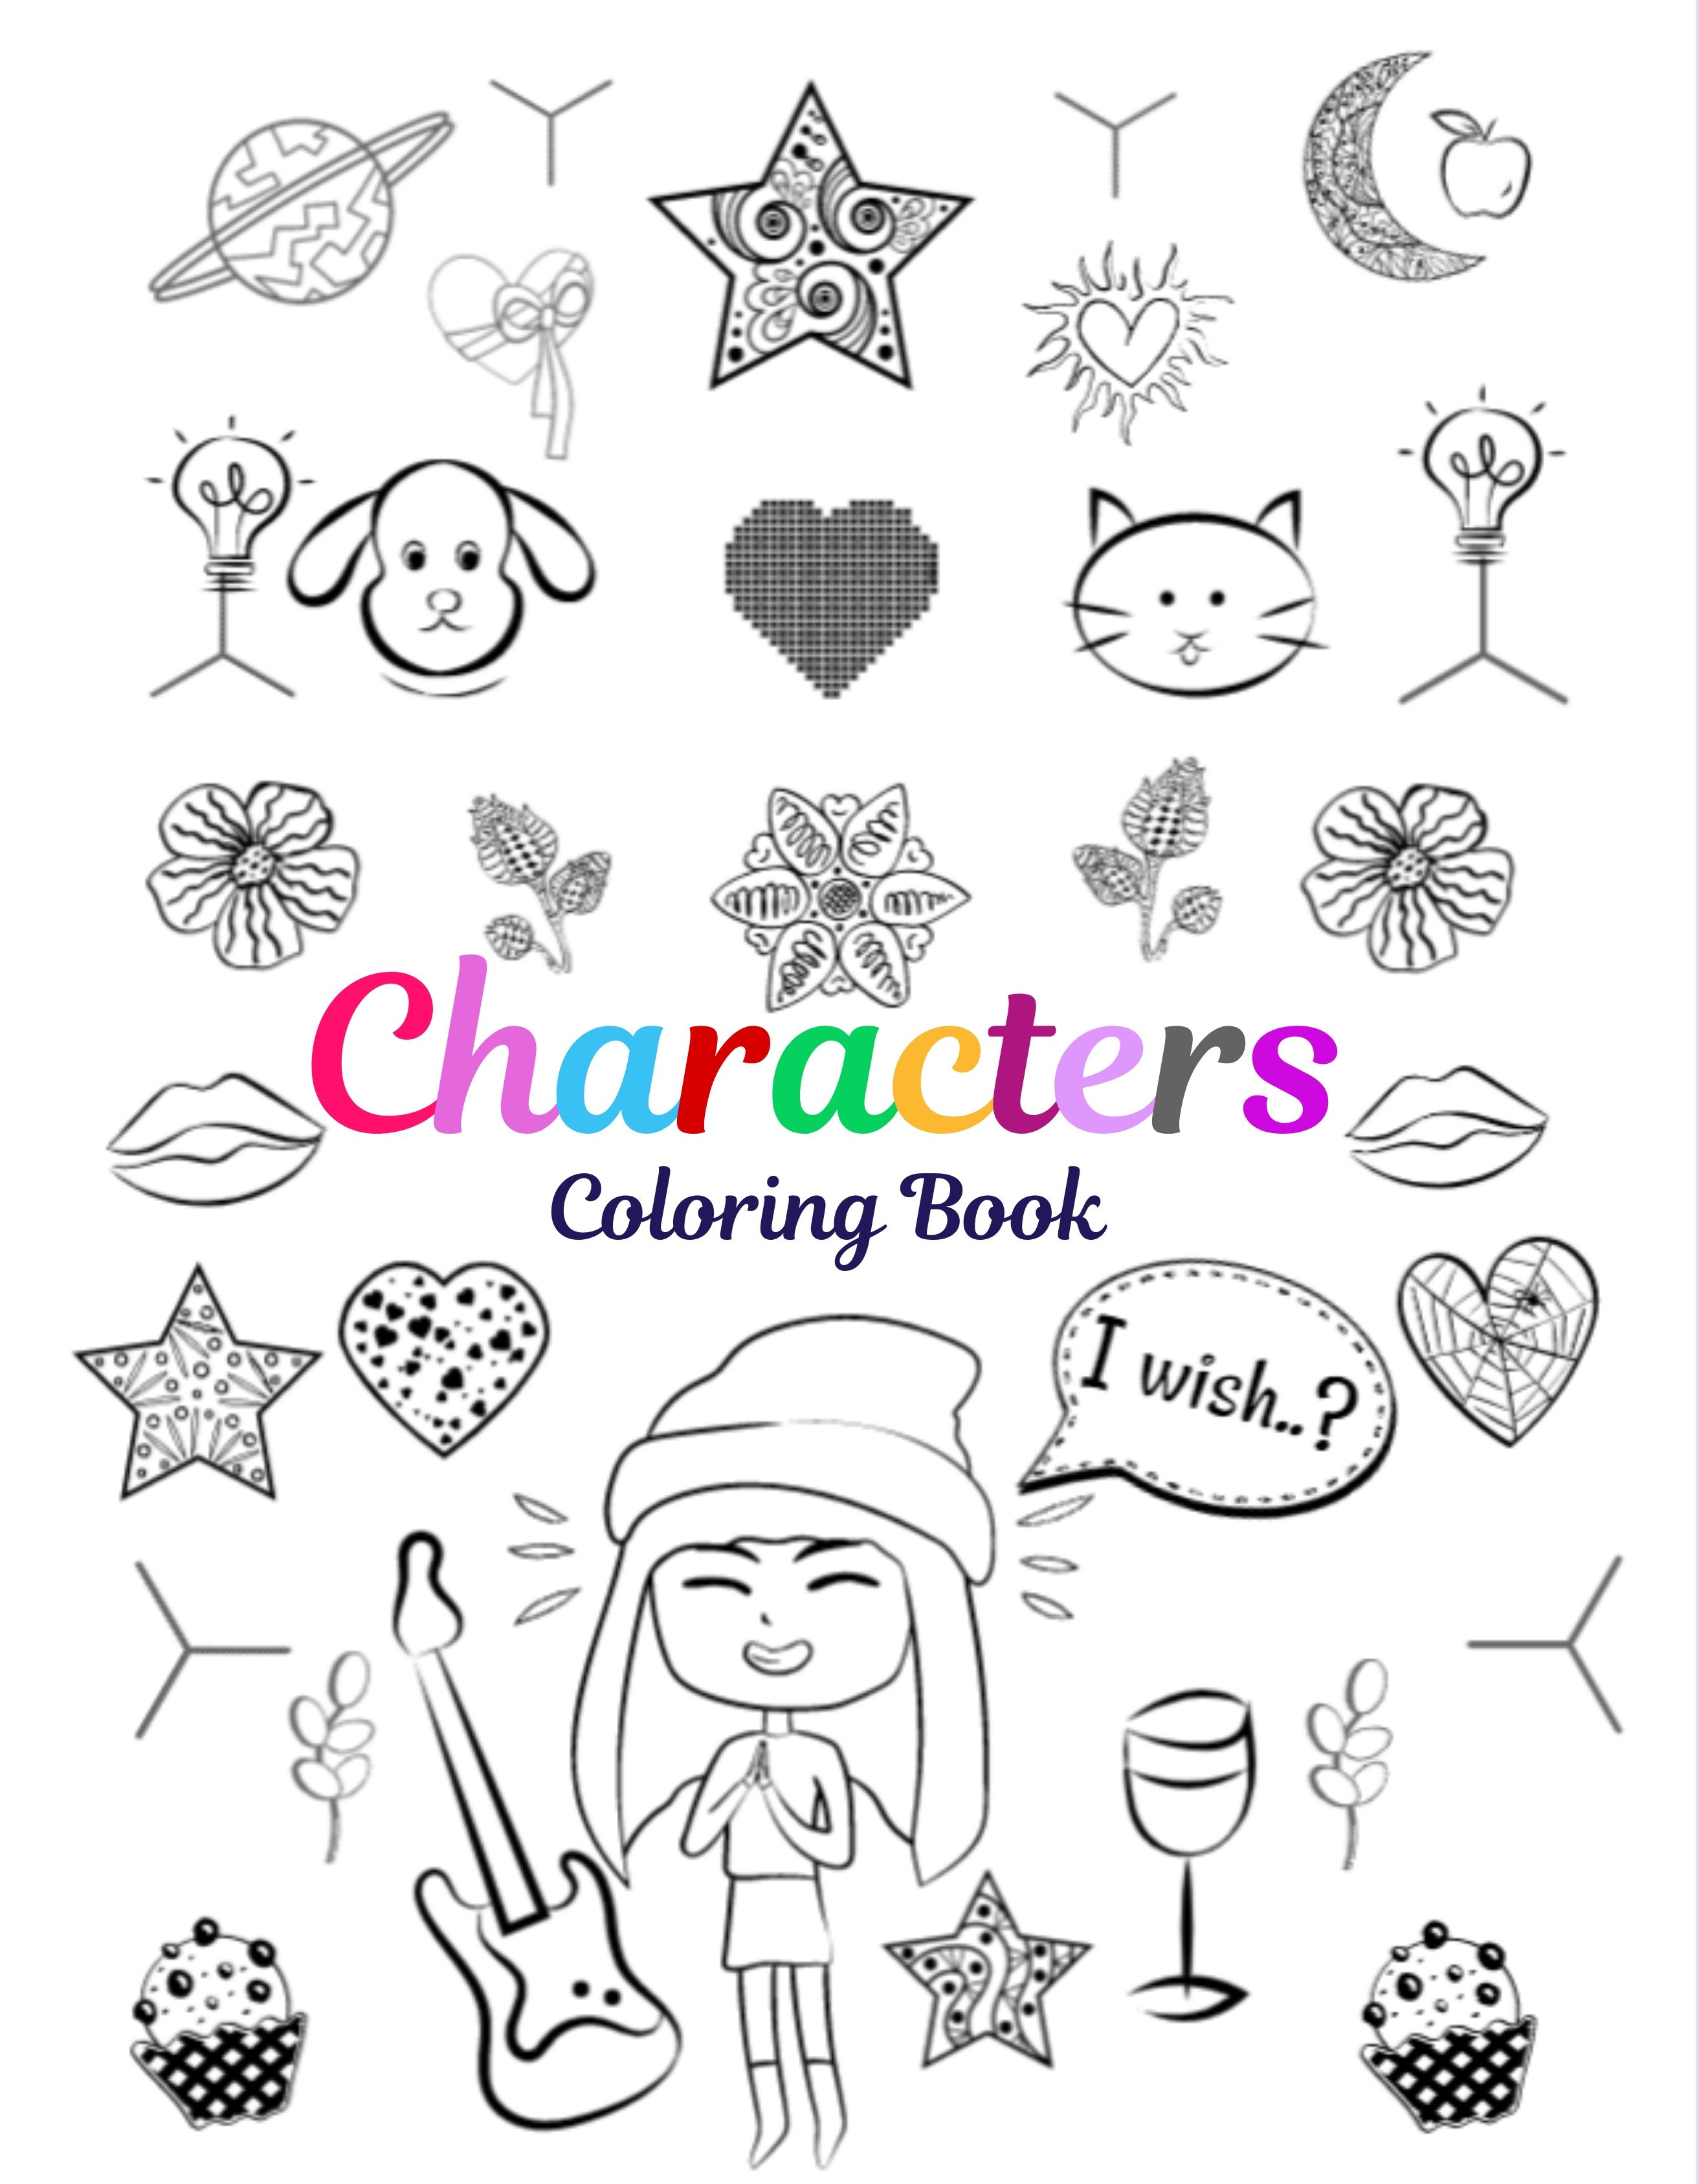 Characters Coloring Book Coloring Books Books Meet Friends